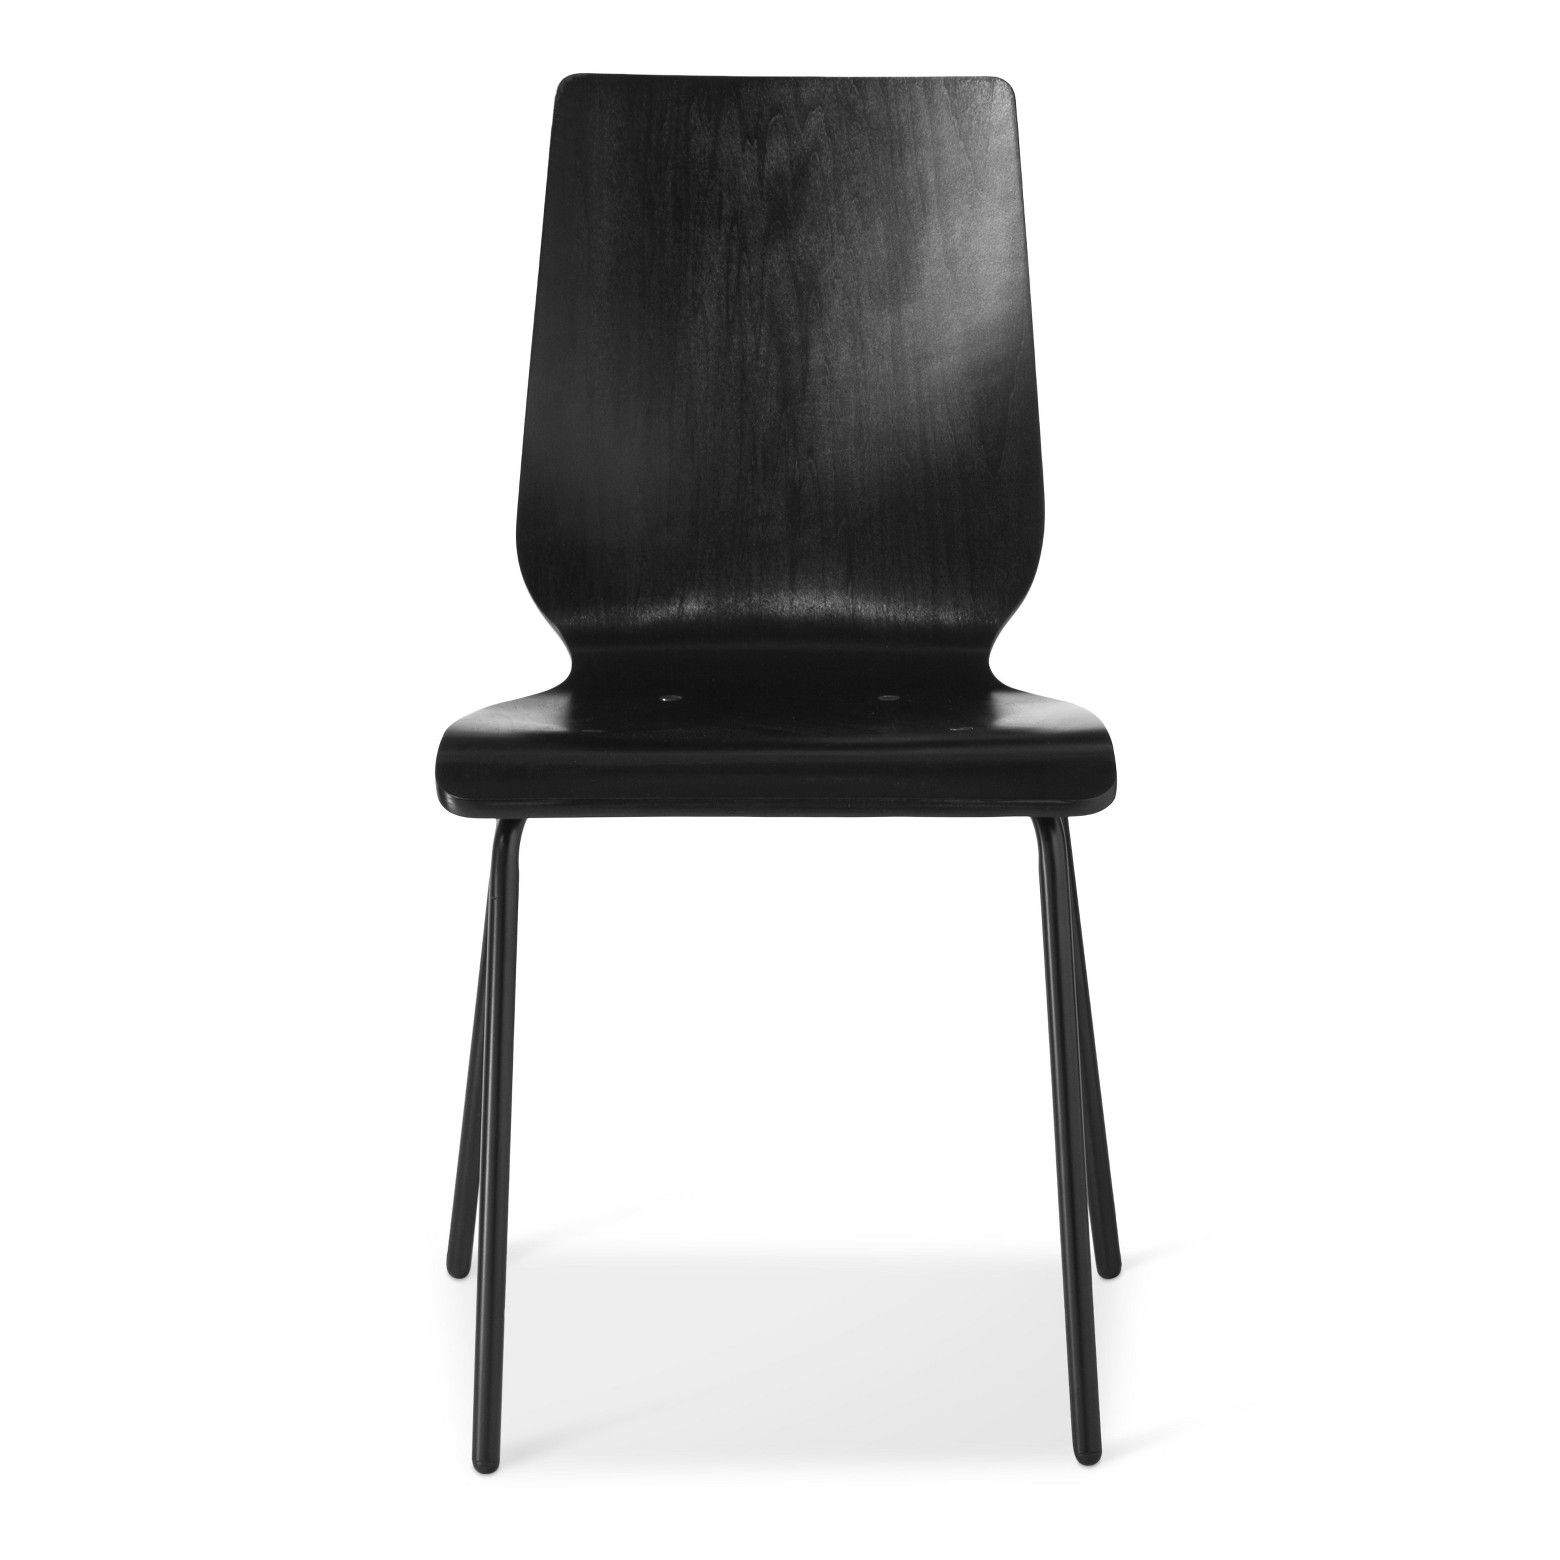 Bent Plywood Stacking Chair Black Room Essentials